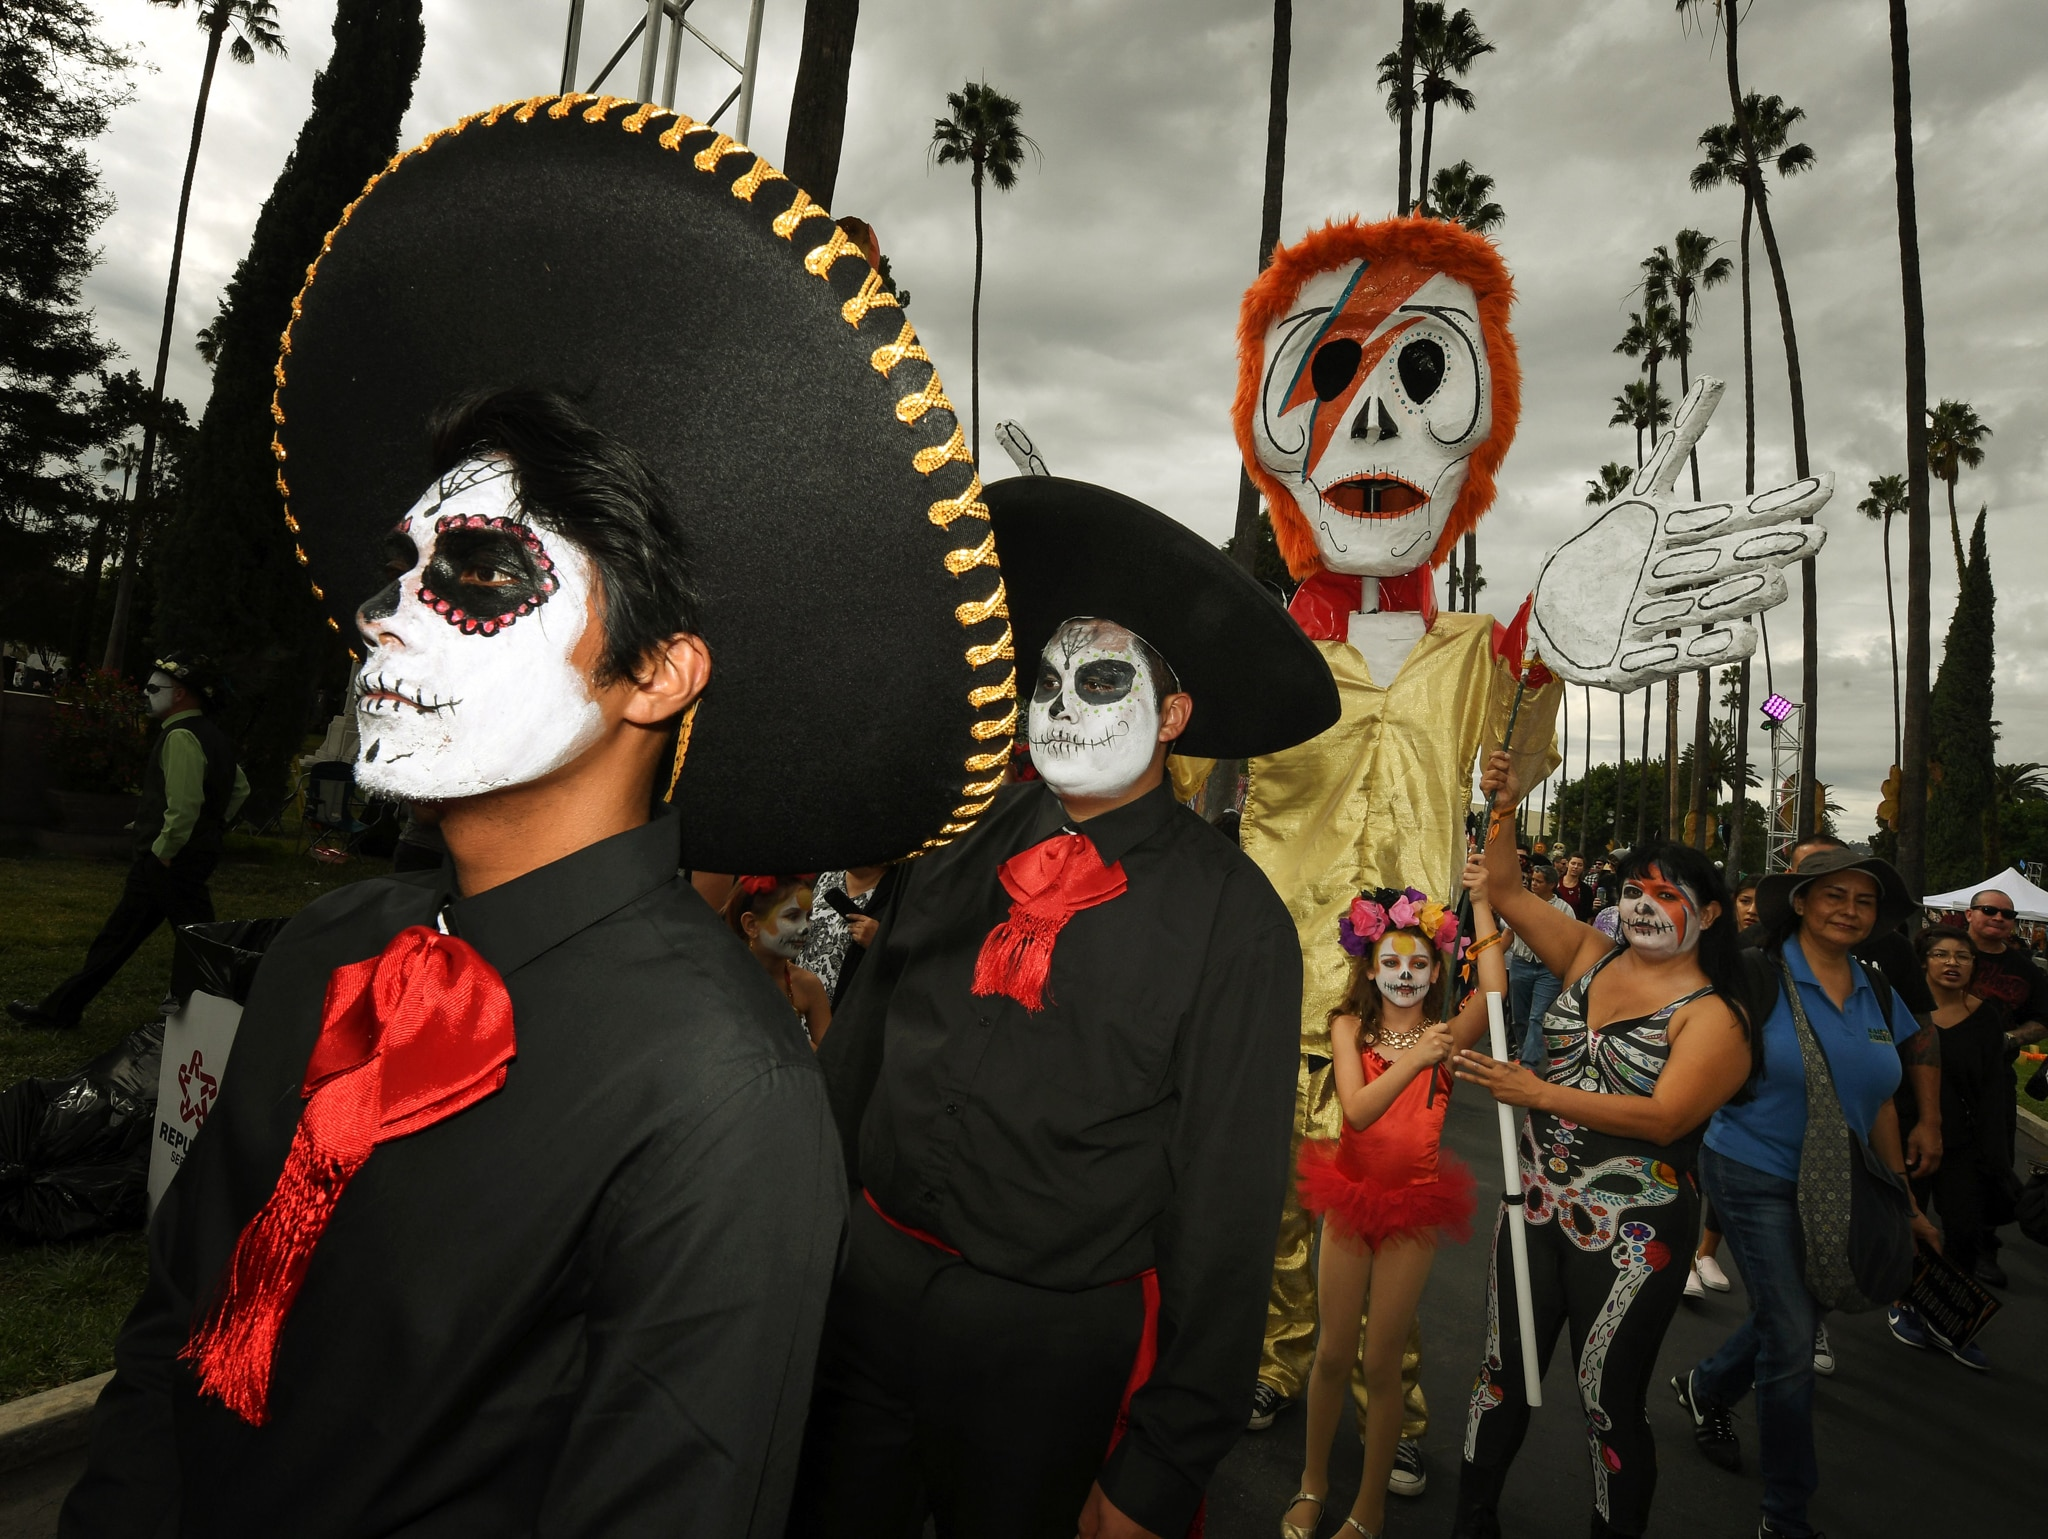 Parade of people dressed in costume (© Mark Ralston/AFP/Getty Images)